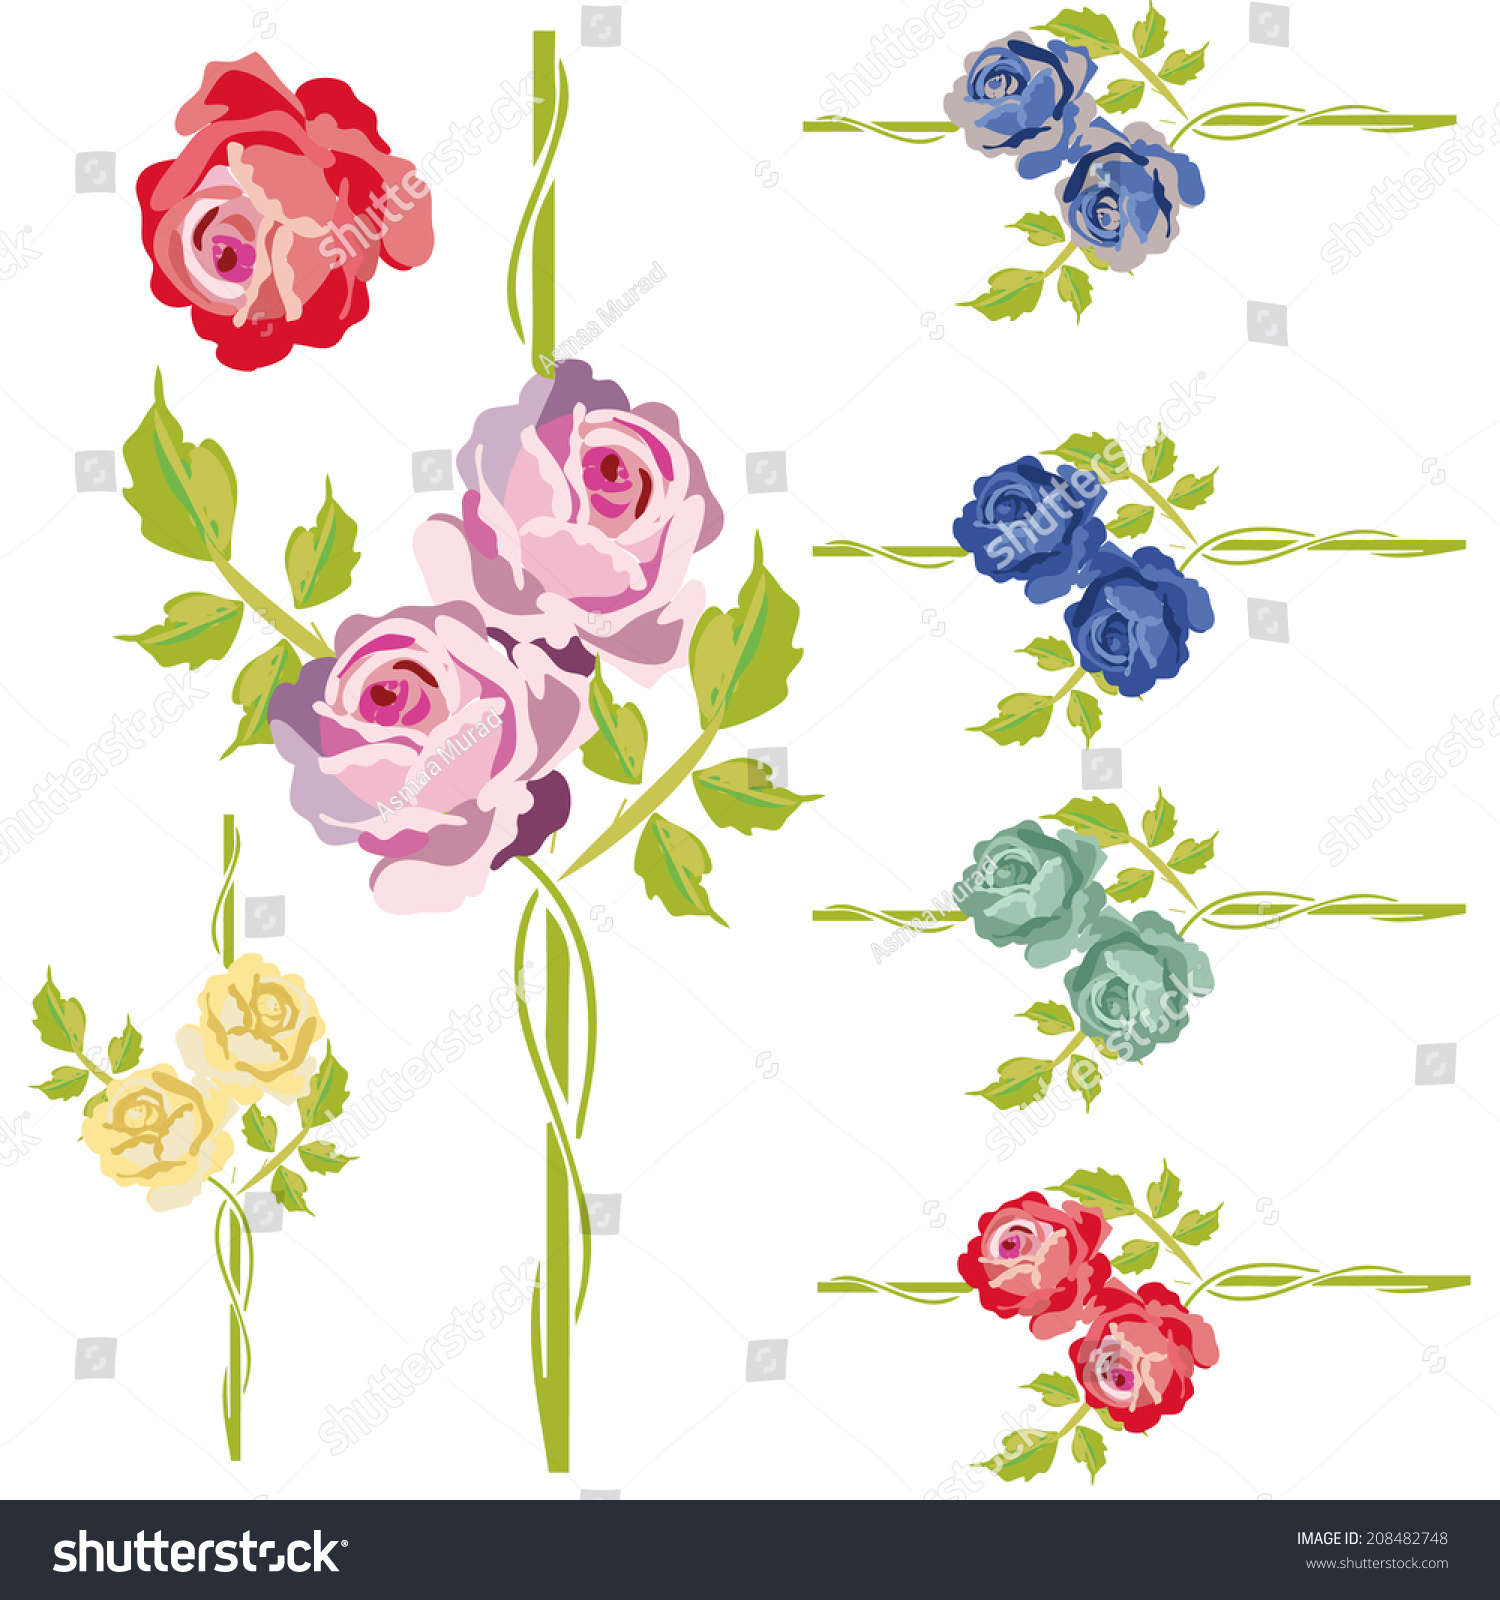 Vintage Rose Flower Vines Frames Borders Stock Vector ...